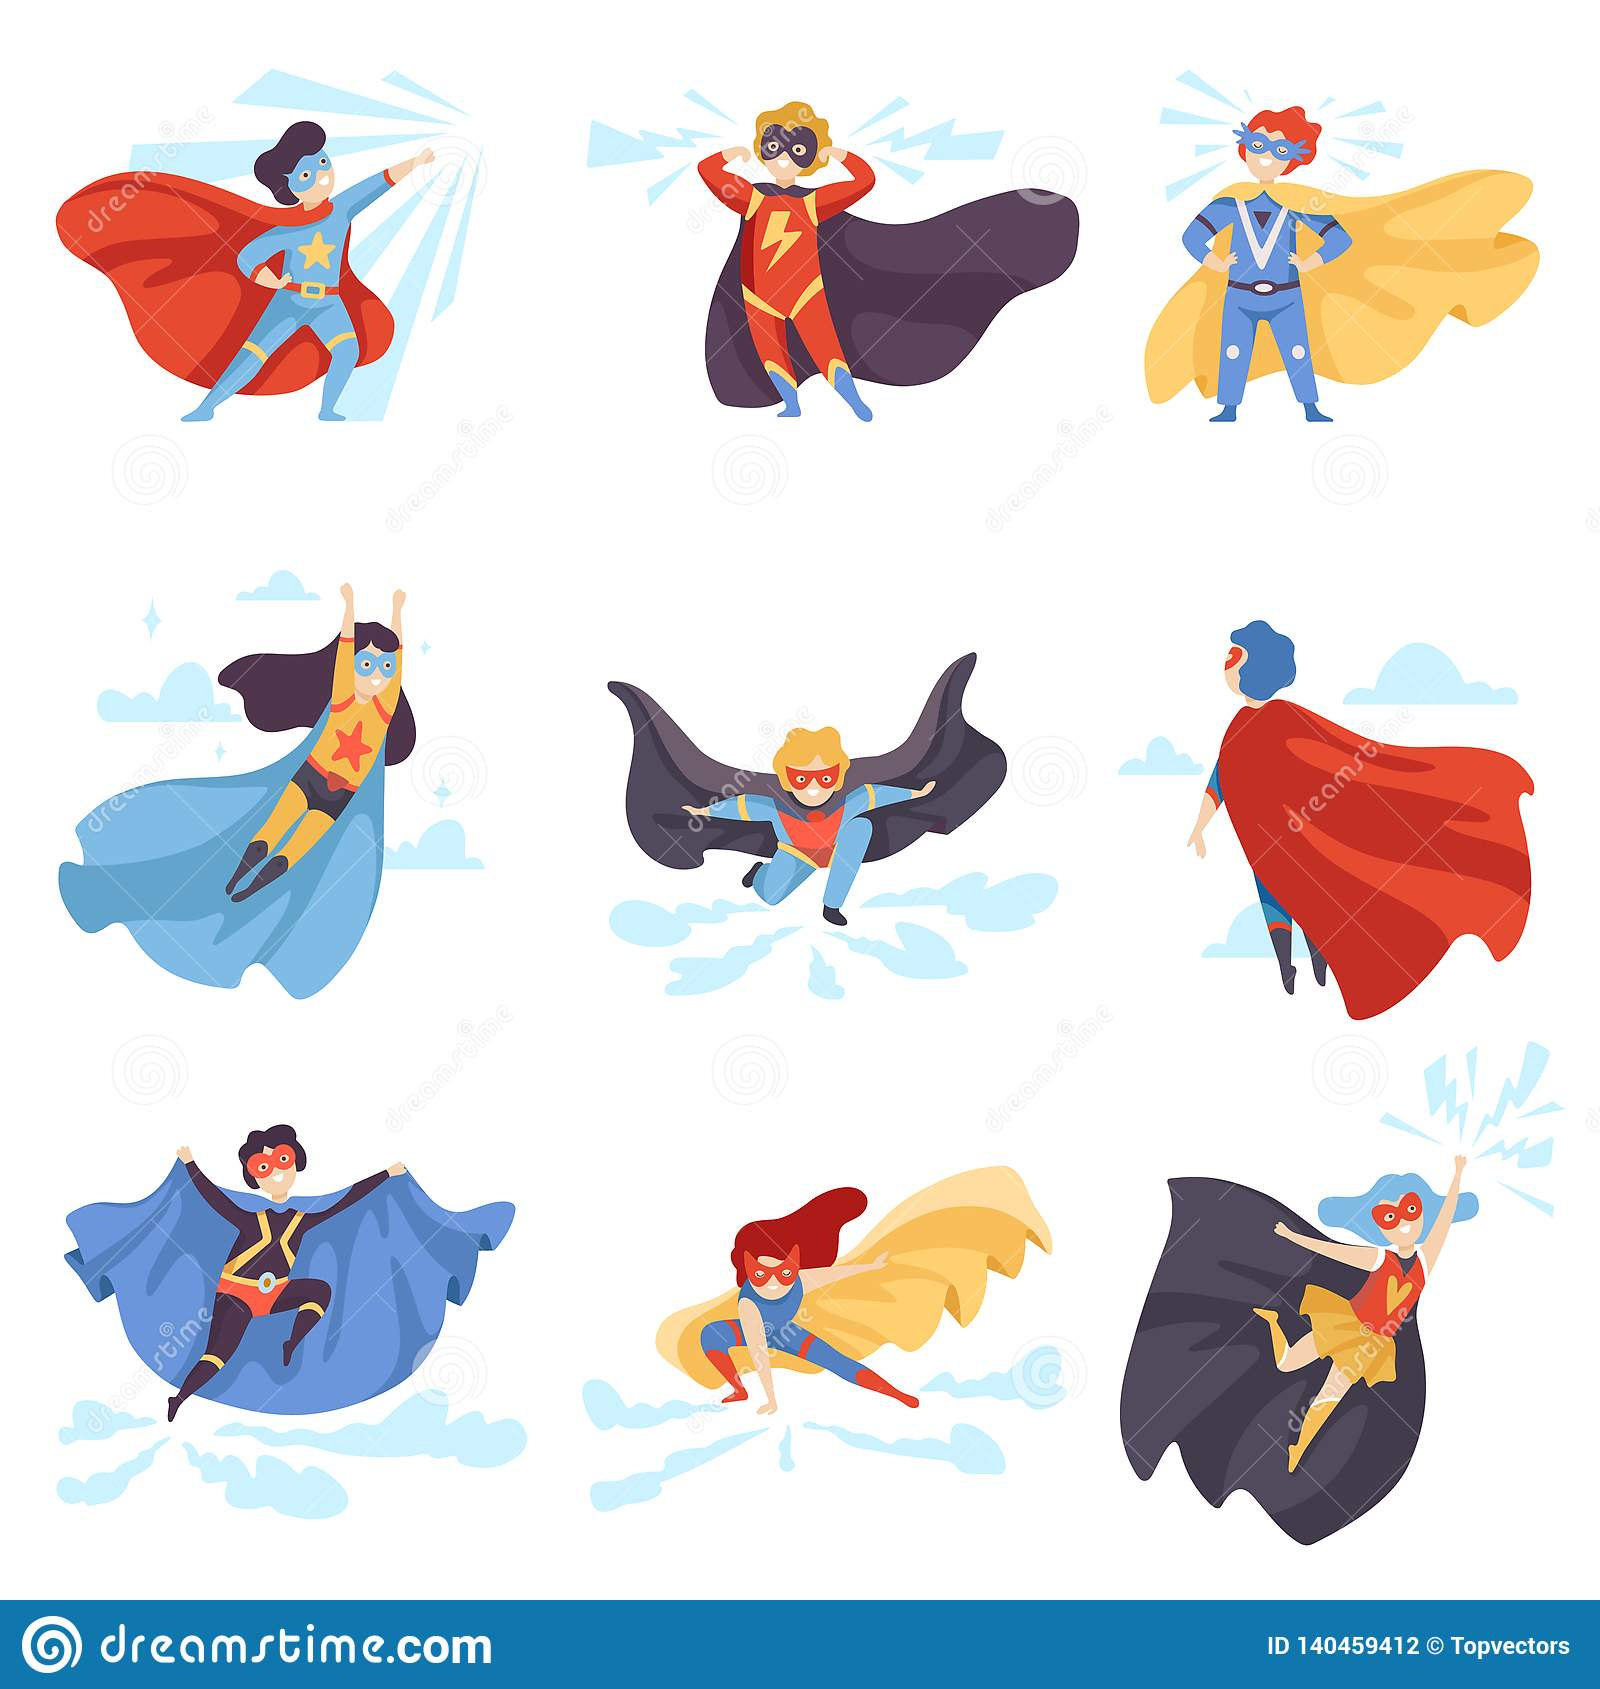 Cute Kids Wearing Superhero Costumes Set, Super Children Characters in Masks and Capes Vector Illustration